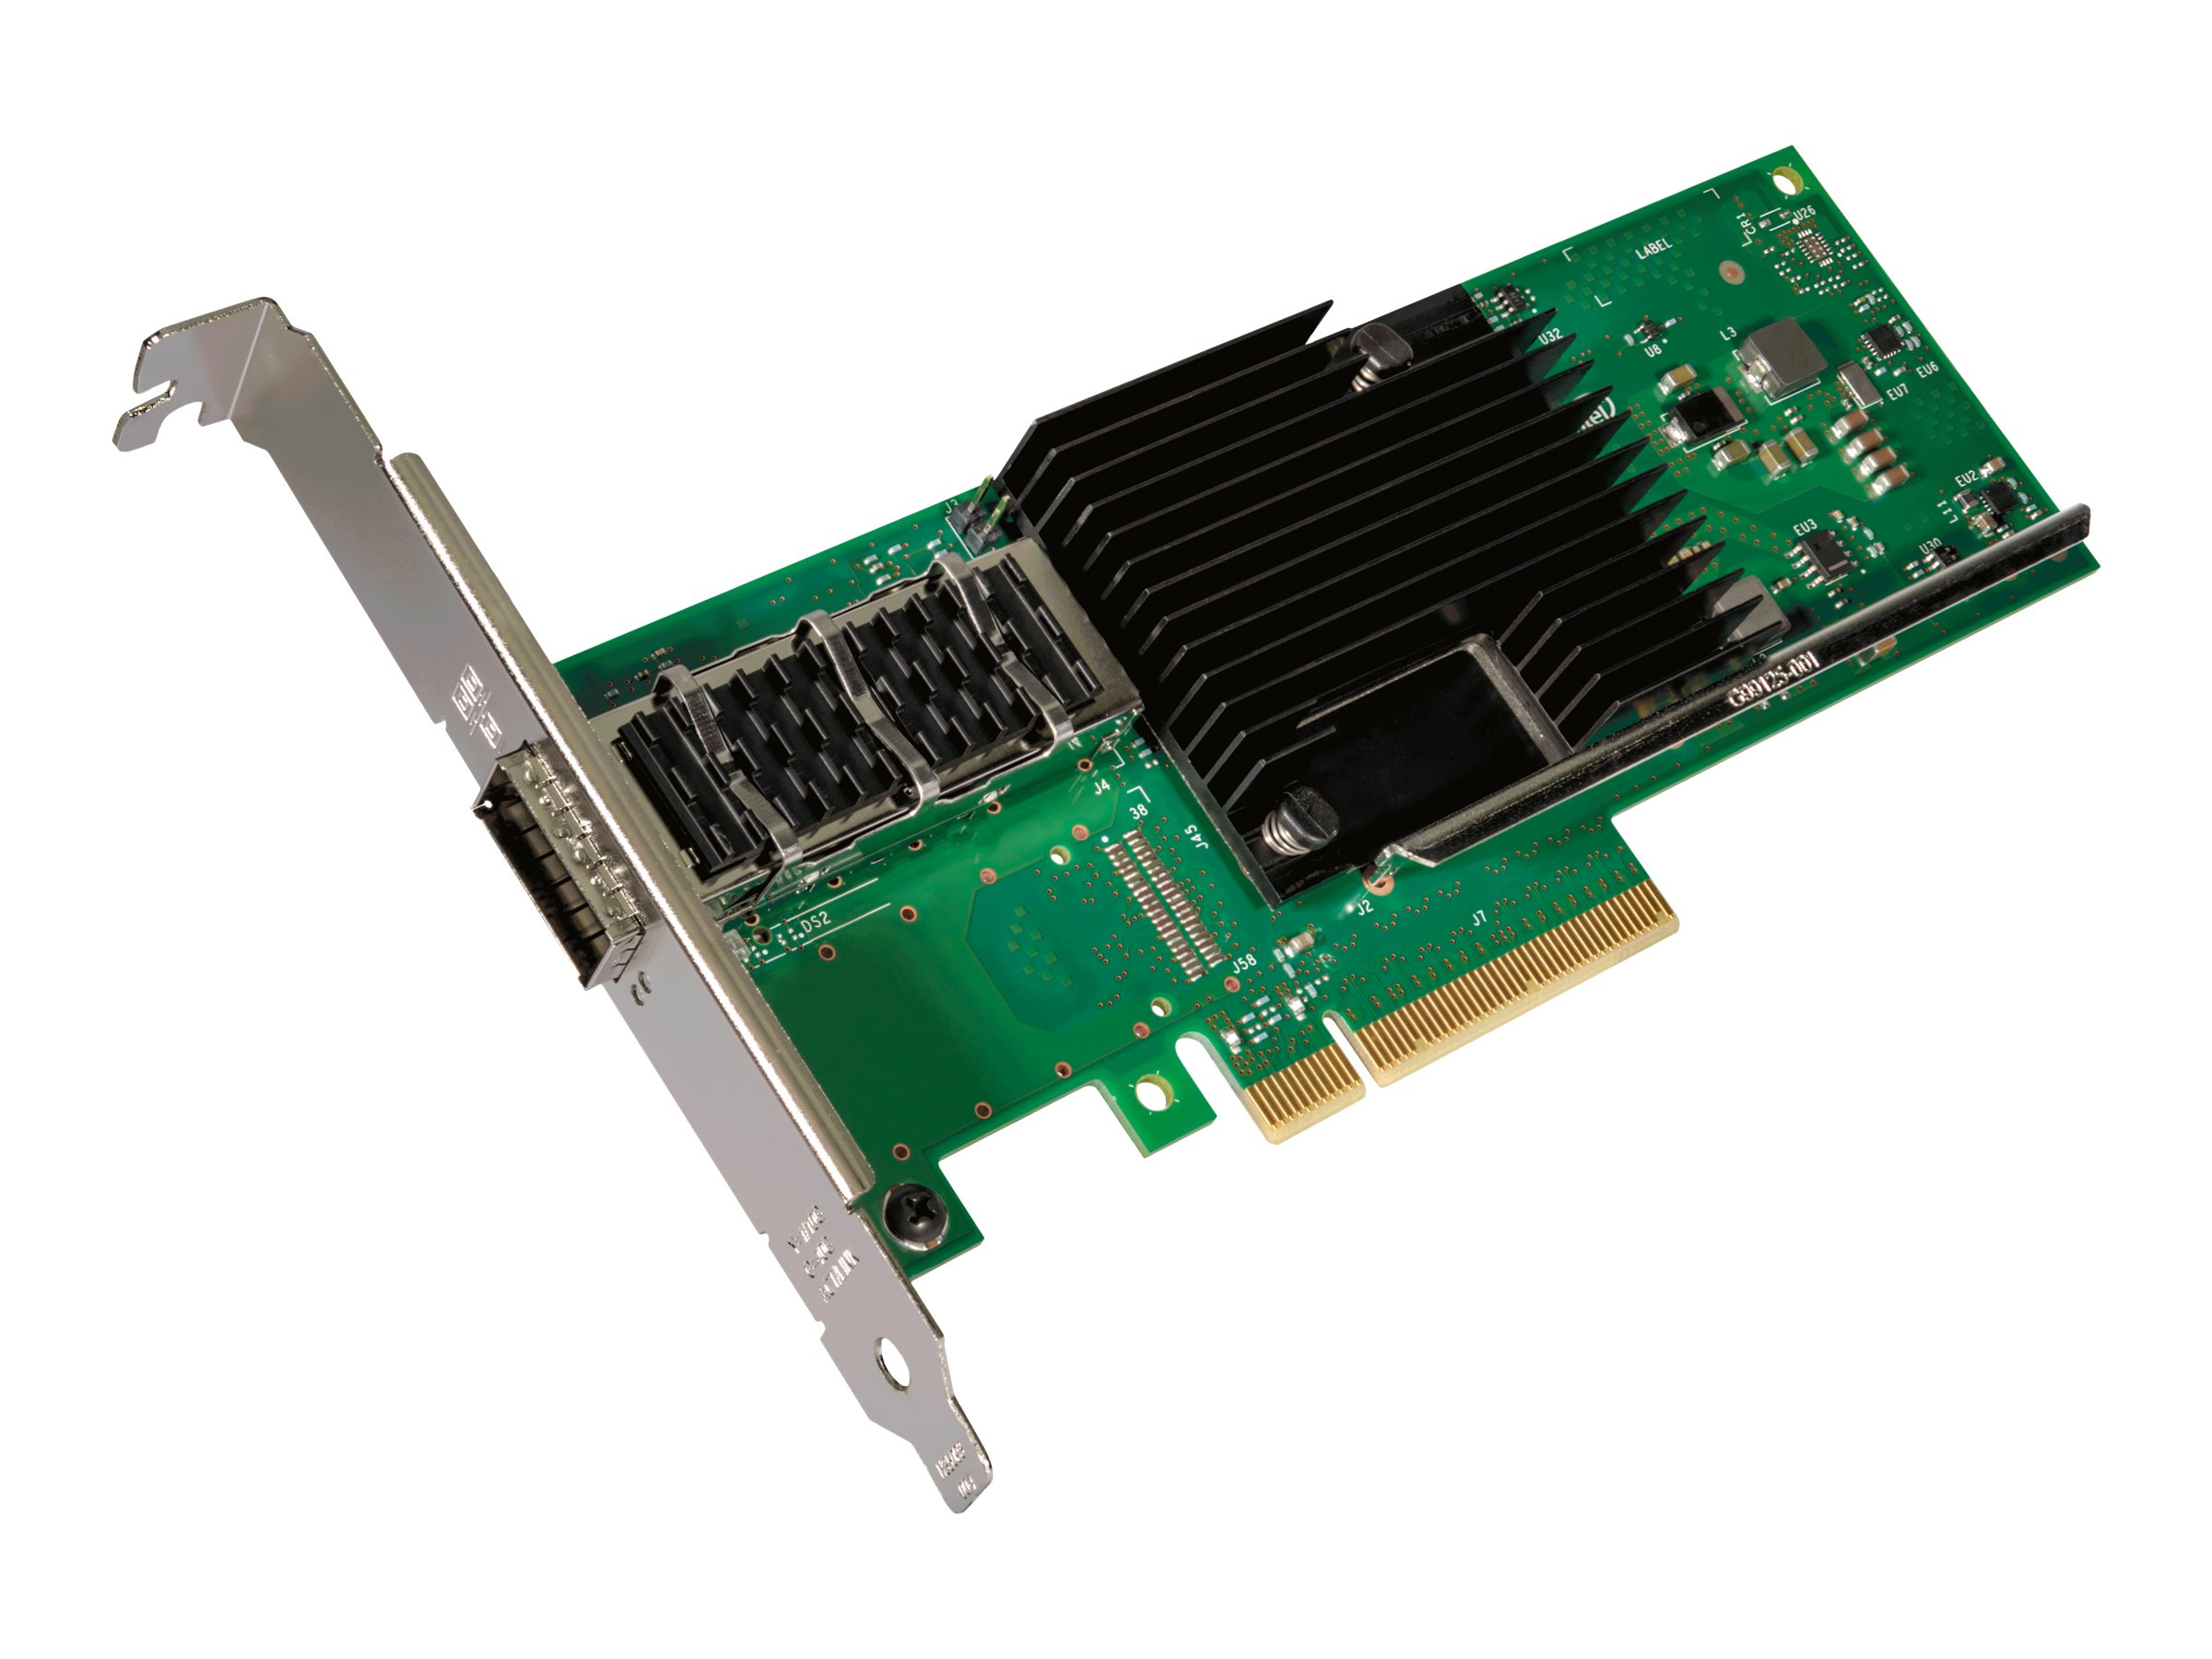 Intel Ethernet Converged Network Adapter XL710-QDA1 - network adapter - PCIe 3.0 x8 - 40 Gigabit QSFP+ x 1